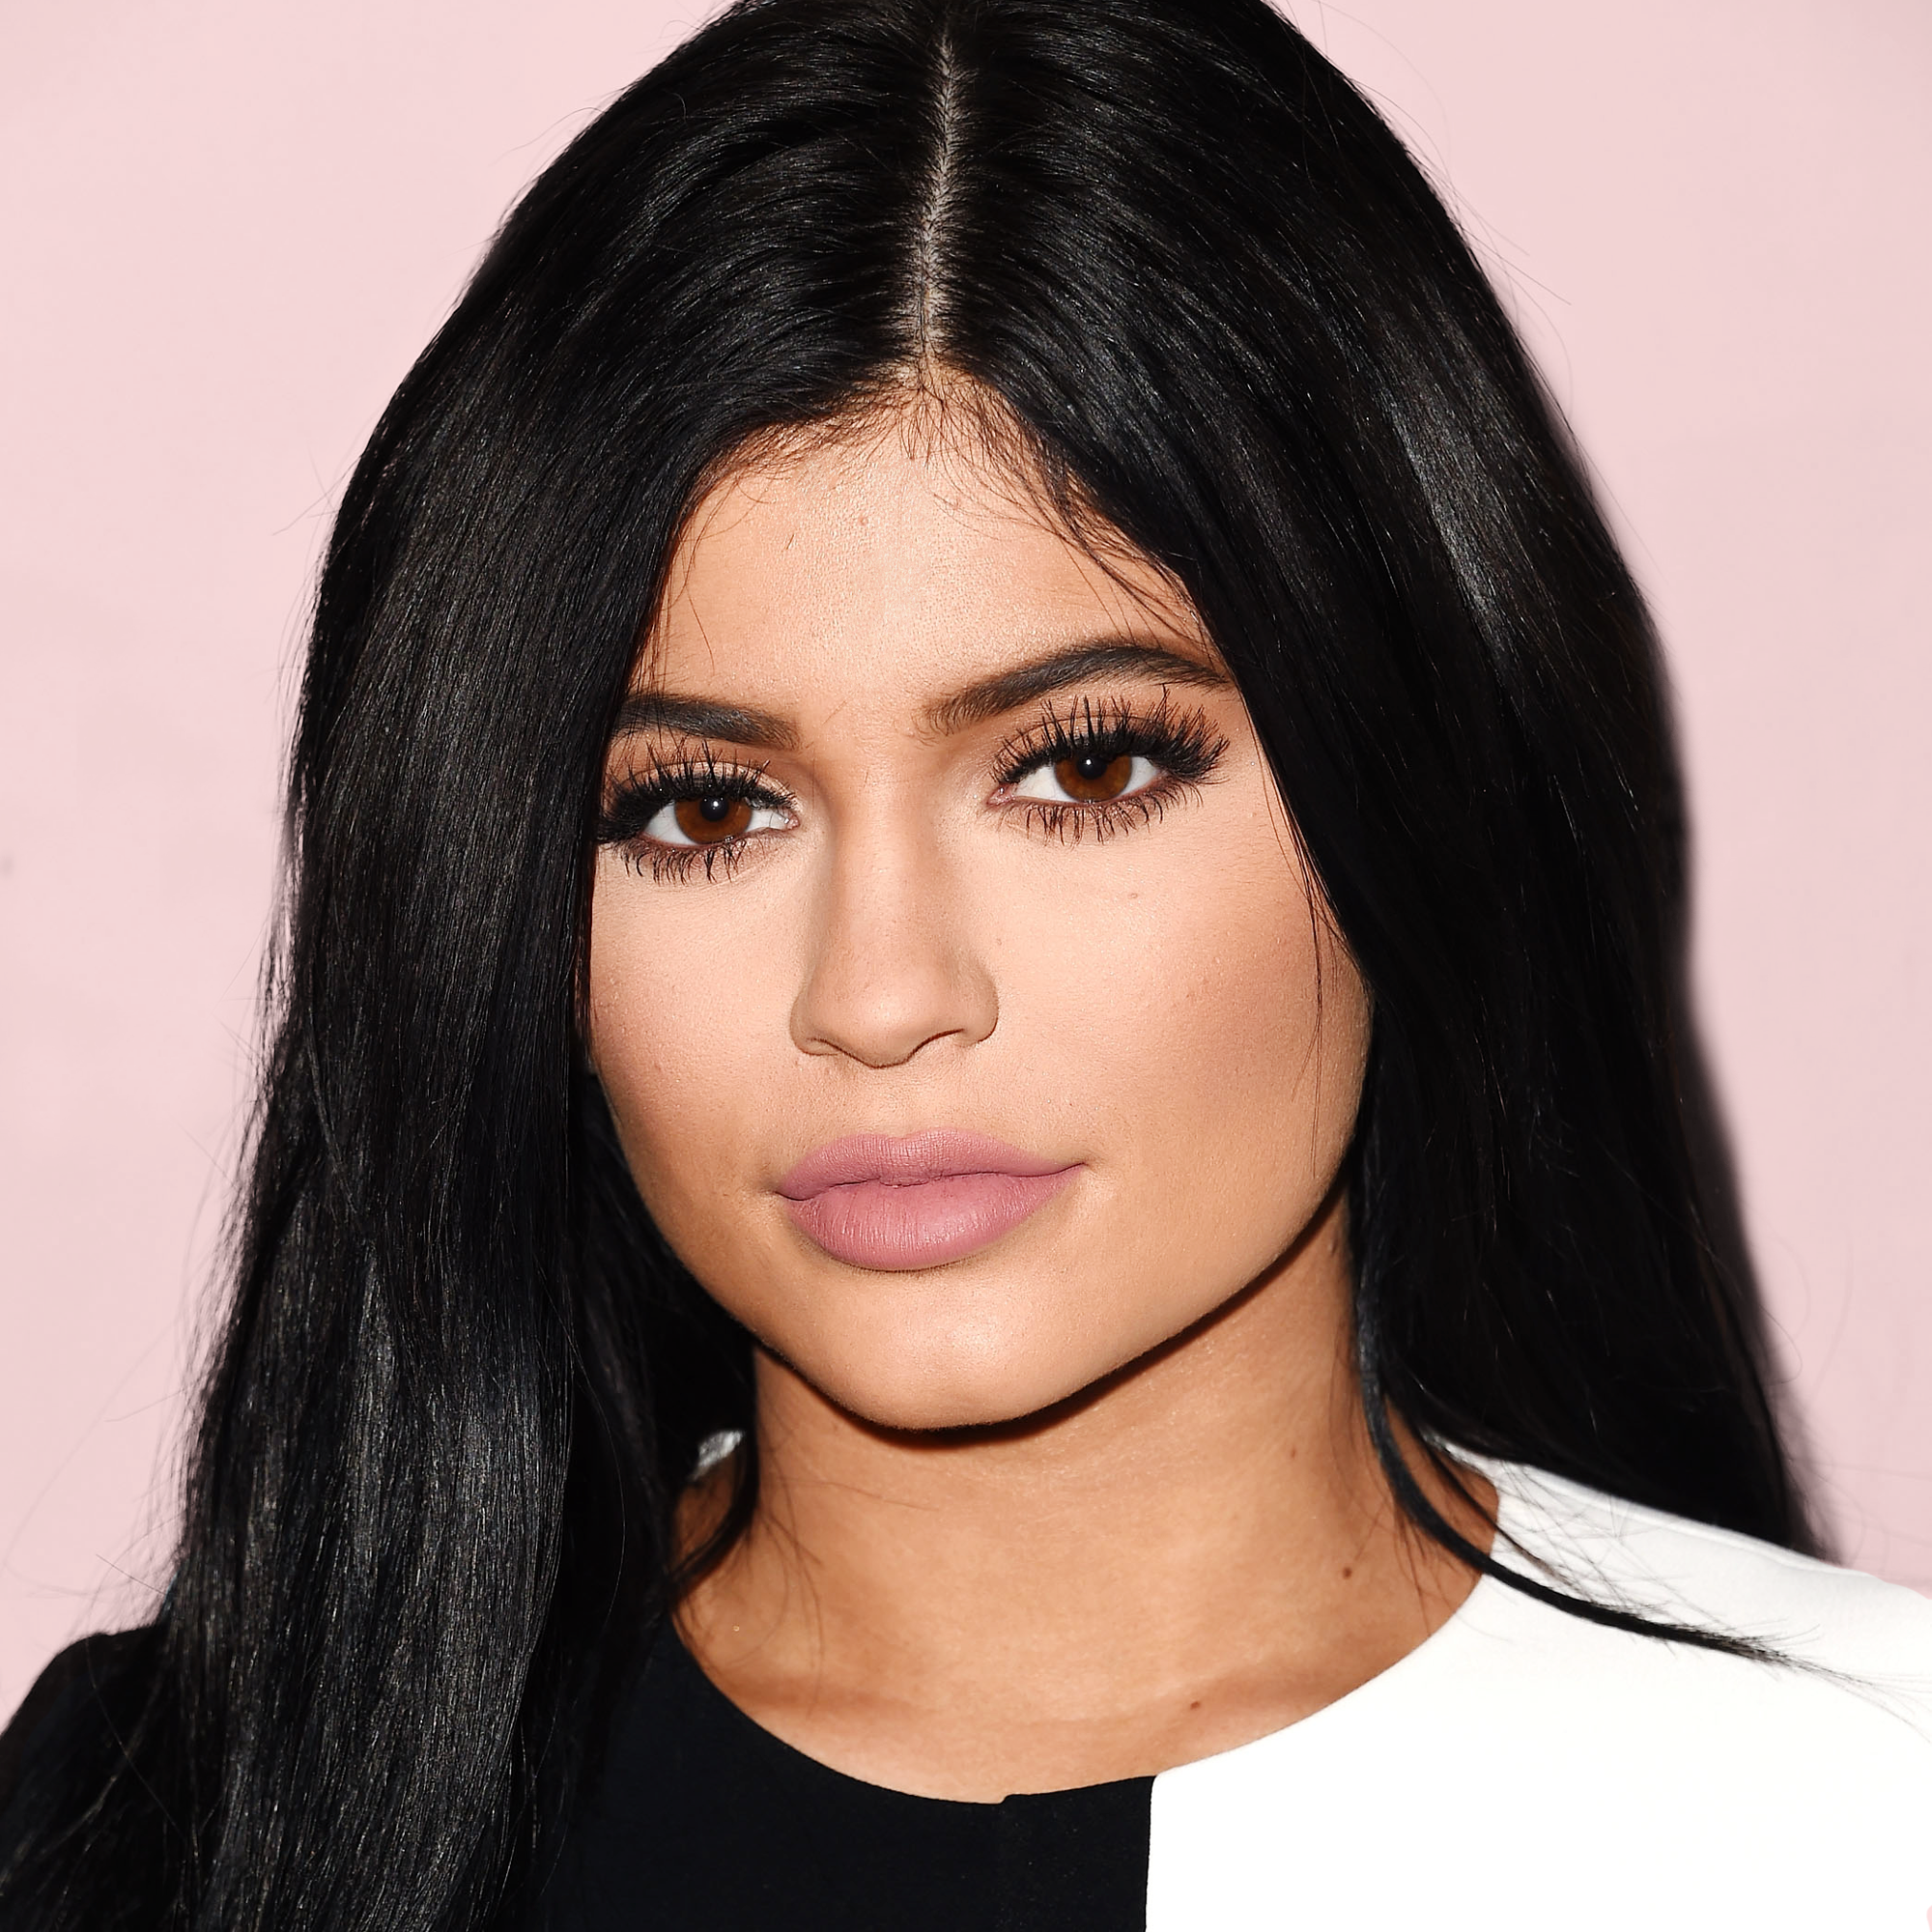 The Latest Hair Makeup And Beauty Trends